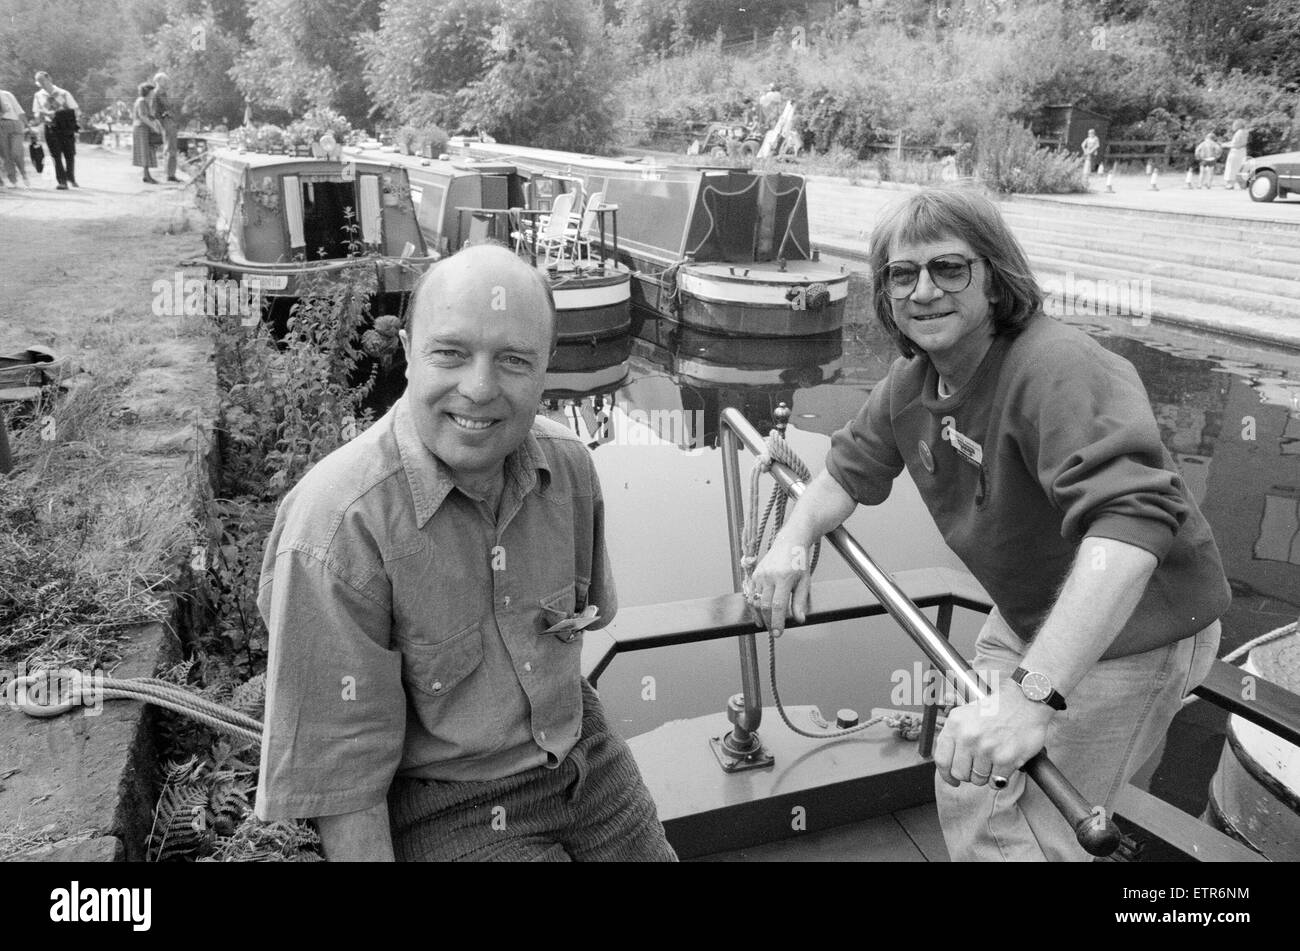 Huddersfield canal festival. 2nd September 1991. - Stock Image